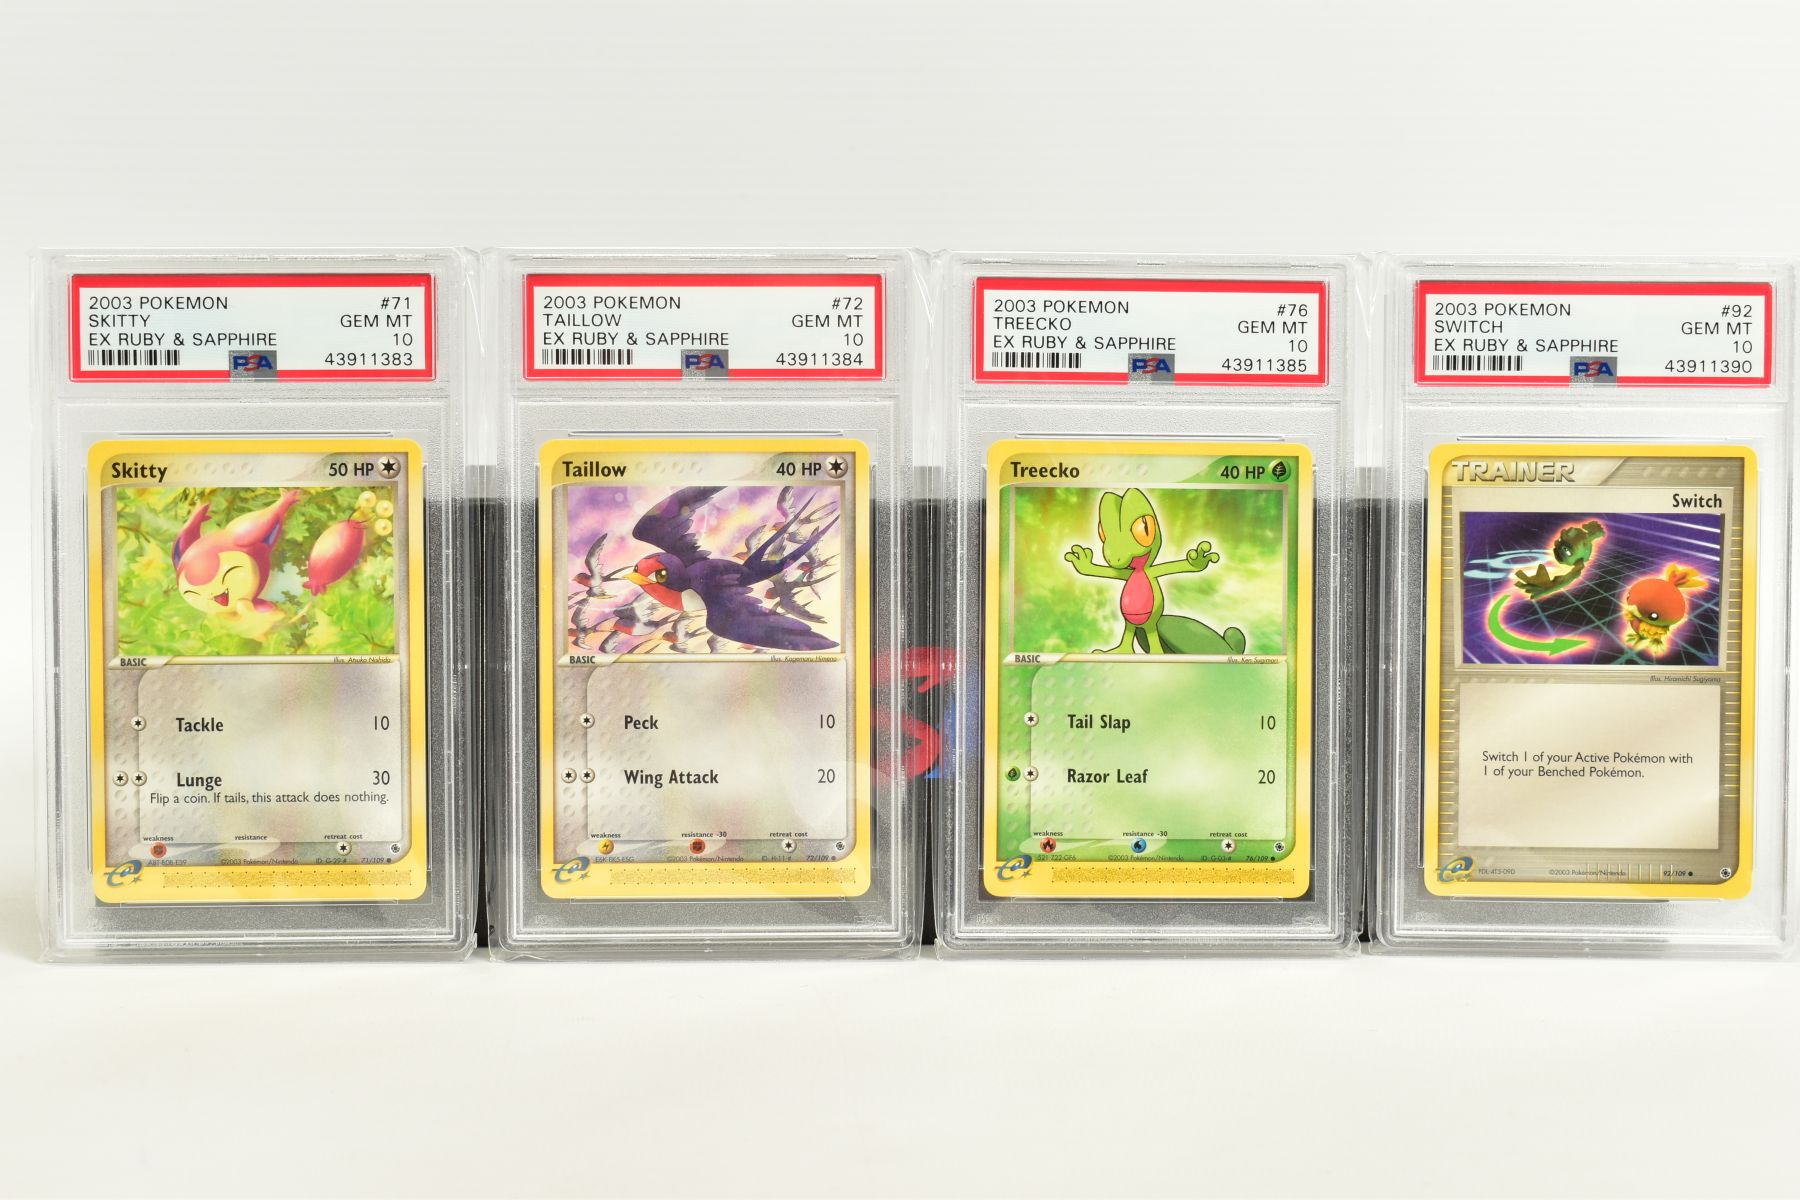 A QUANTITY OF PSA GRADED POKEMON EX TEAM ROCKET RETURNS AND EX RUBY & SAPPHIRE SET CARDS, all are - Image 15 of 15